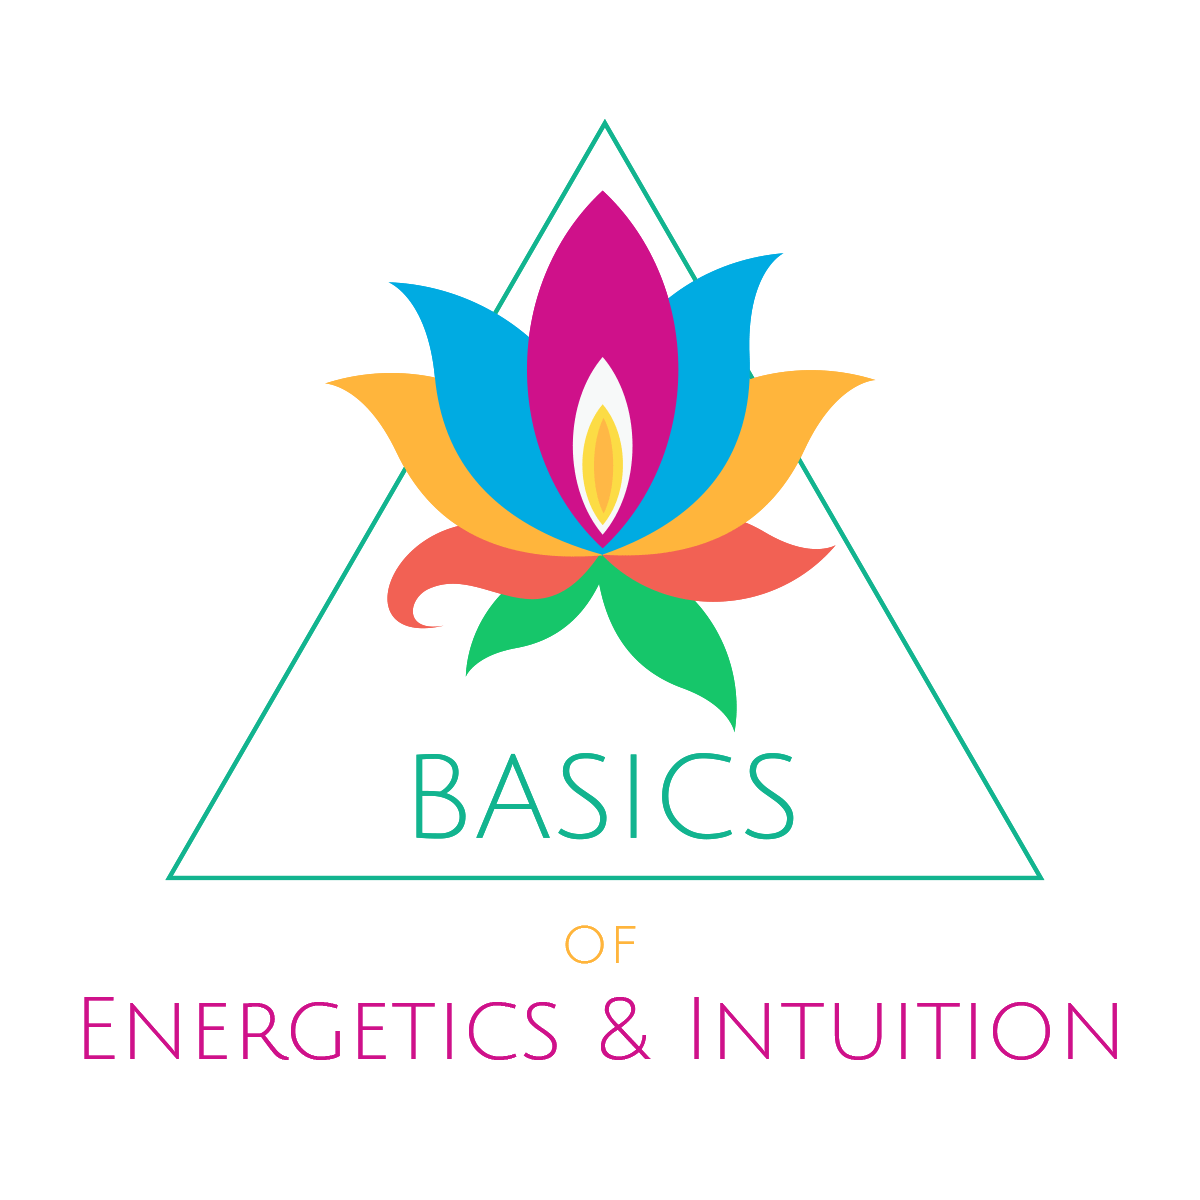 basics-of-energetics-and-intuition-plain